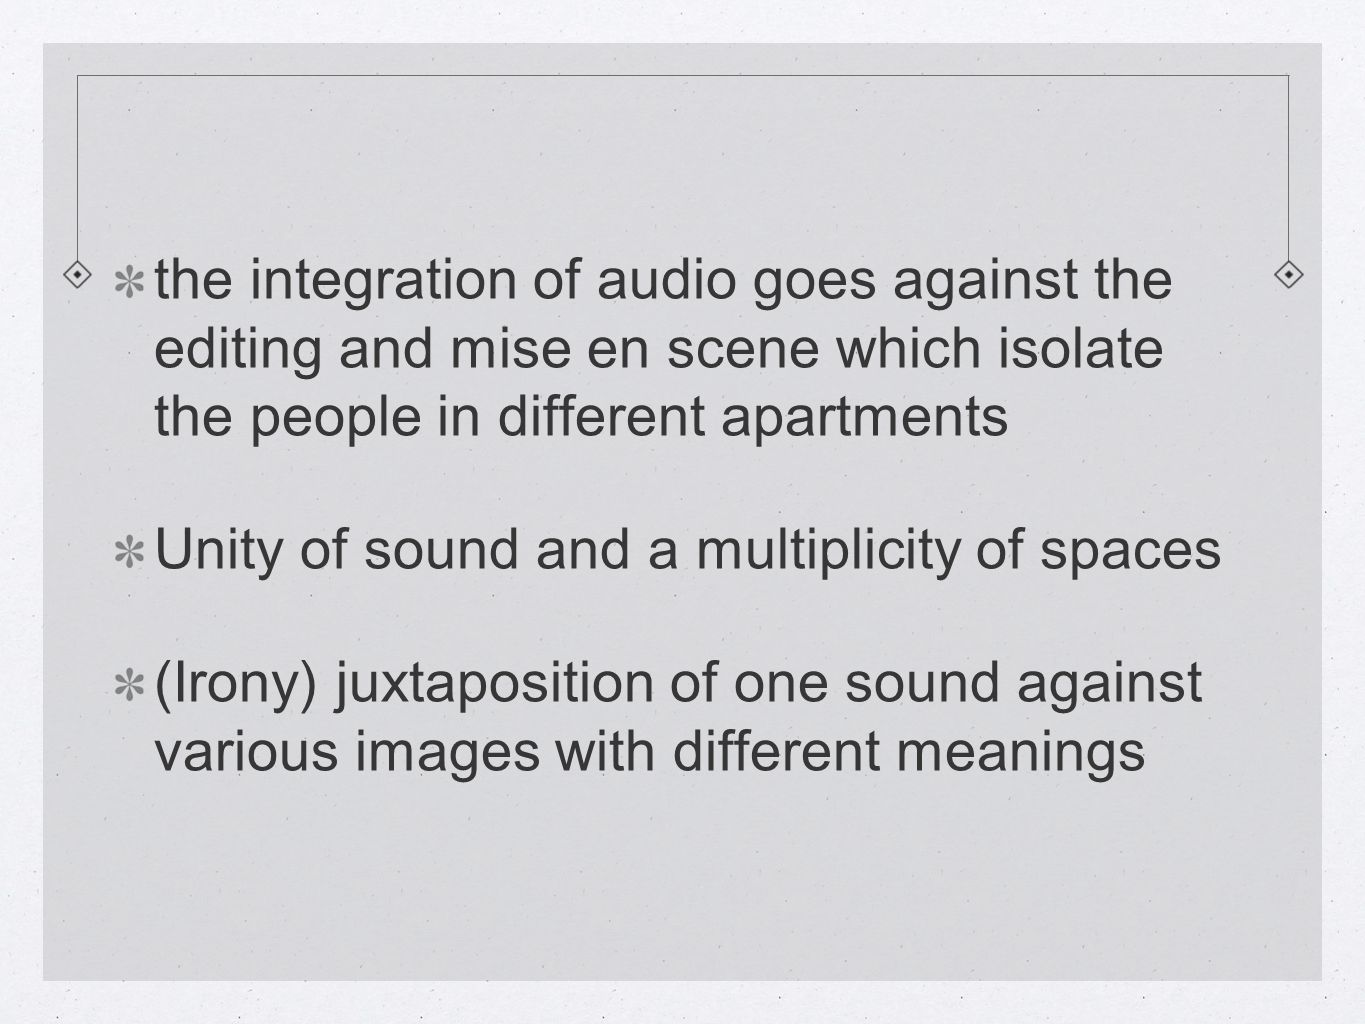 the integration of audio goes against the editing and mise en scene which isolate the people in different apartments Unity of sound and a multiplicity of spaces (Irony) juxtaposition of one sound against various images with different meanings